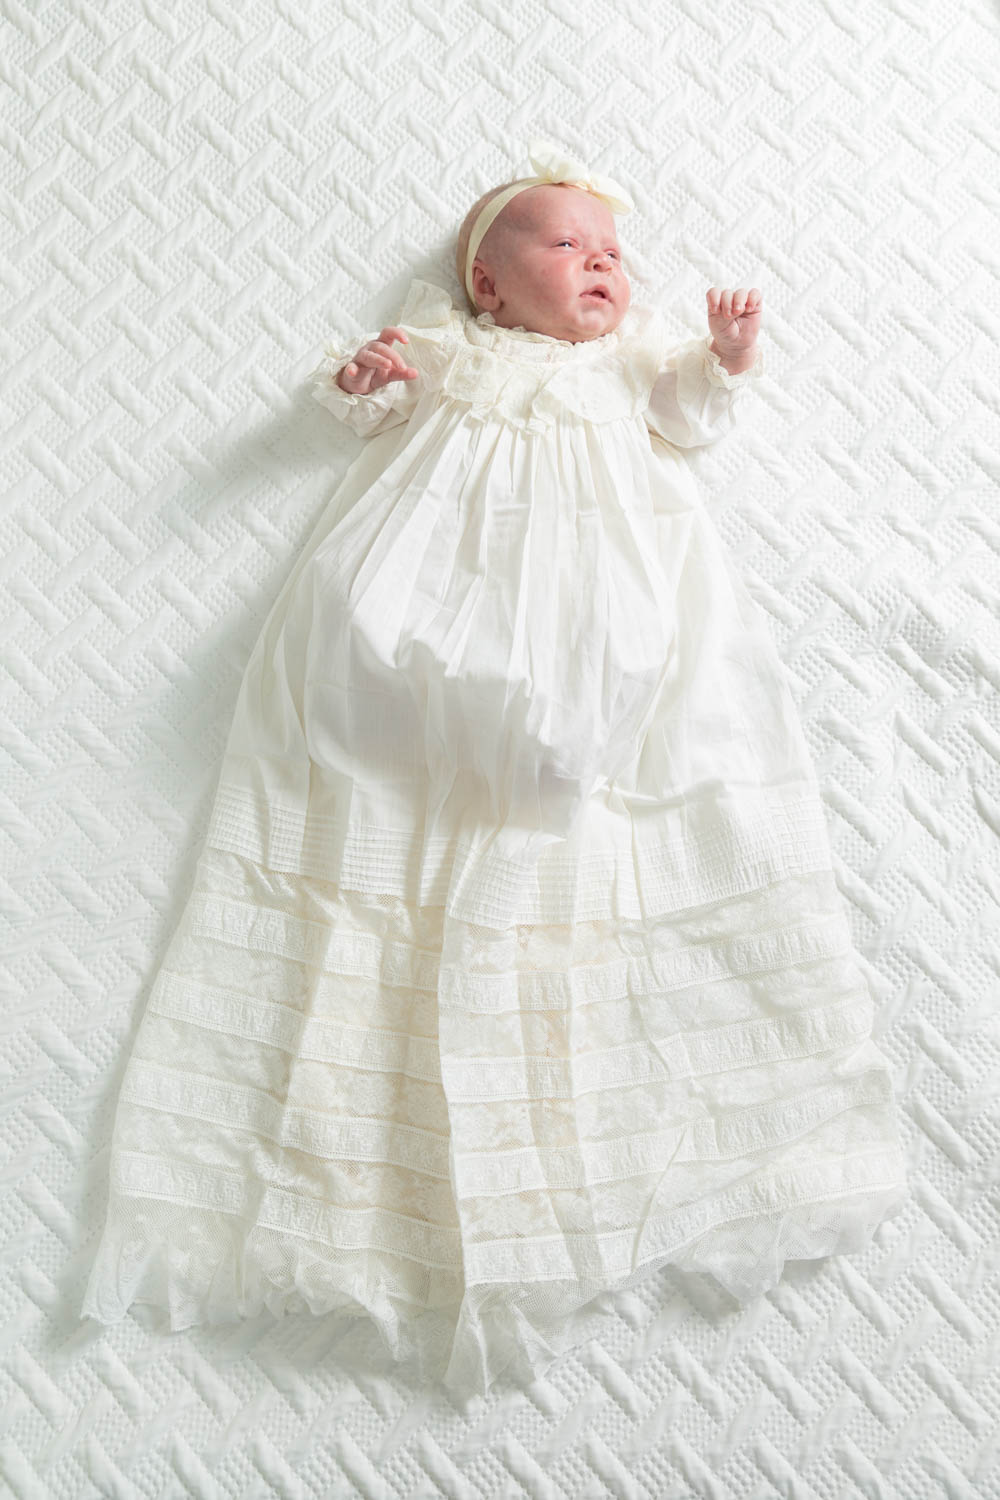 Ainsley in her baby dress. The dress is more than 113 years old.